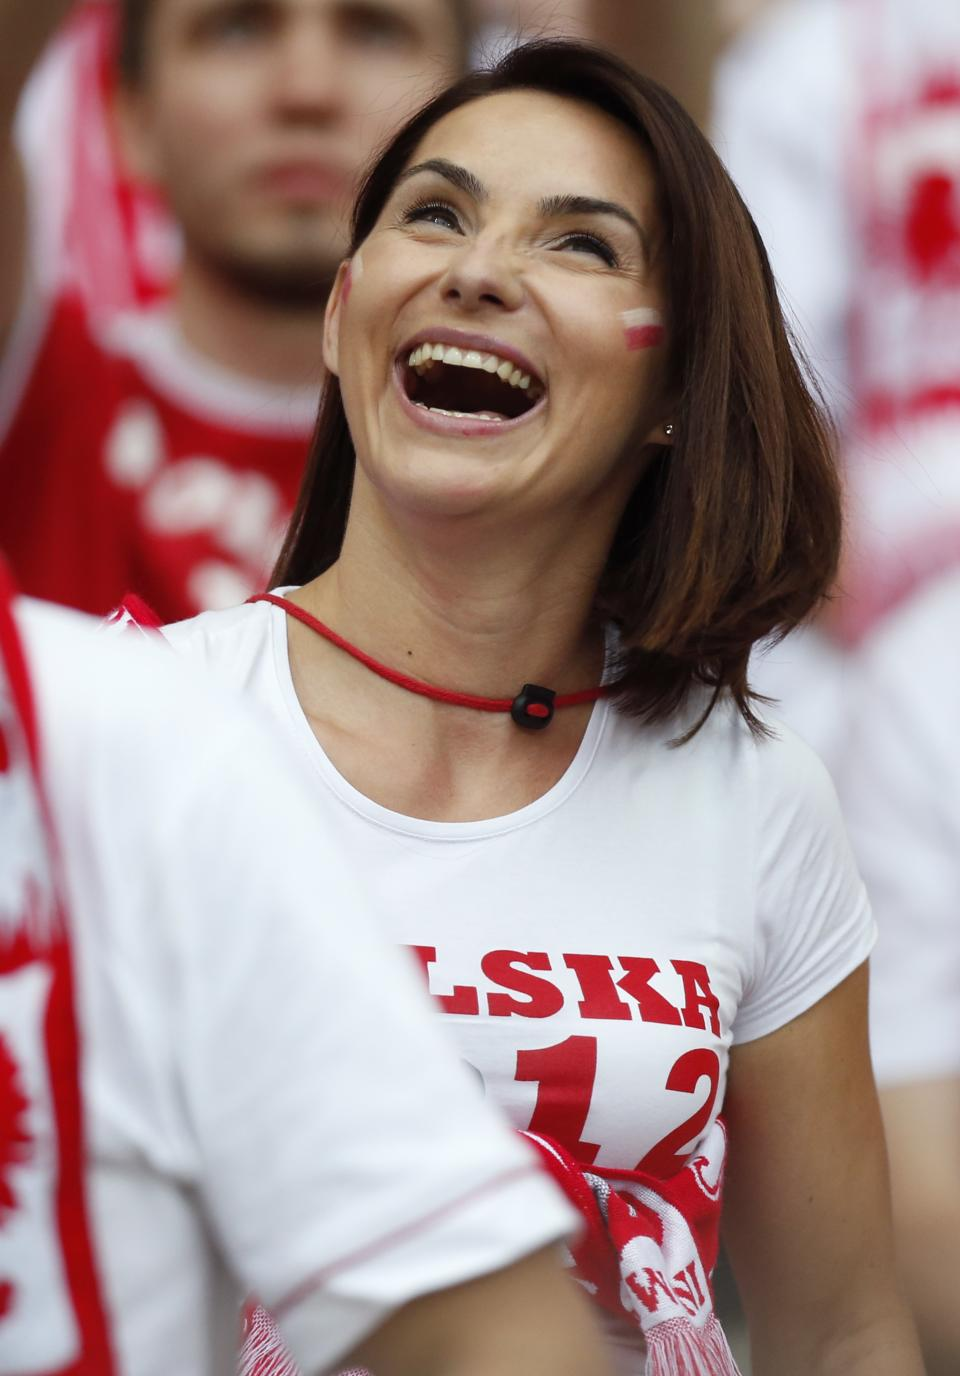 A Poland supporer smiles prior to the Euro 2012 soccer championship Group A match between Poland and Russia in Warsaw, Poland, Tuesday, June 12, 2012. (AP Photo/Matt Dunham)